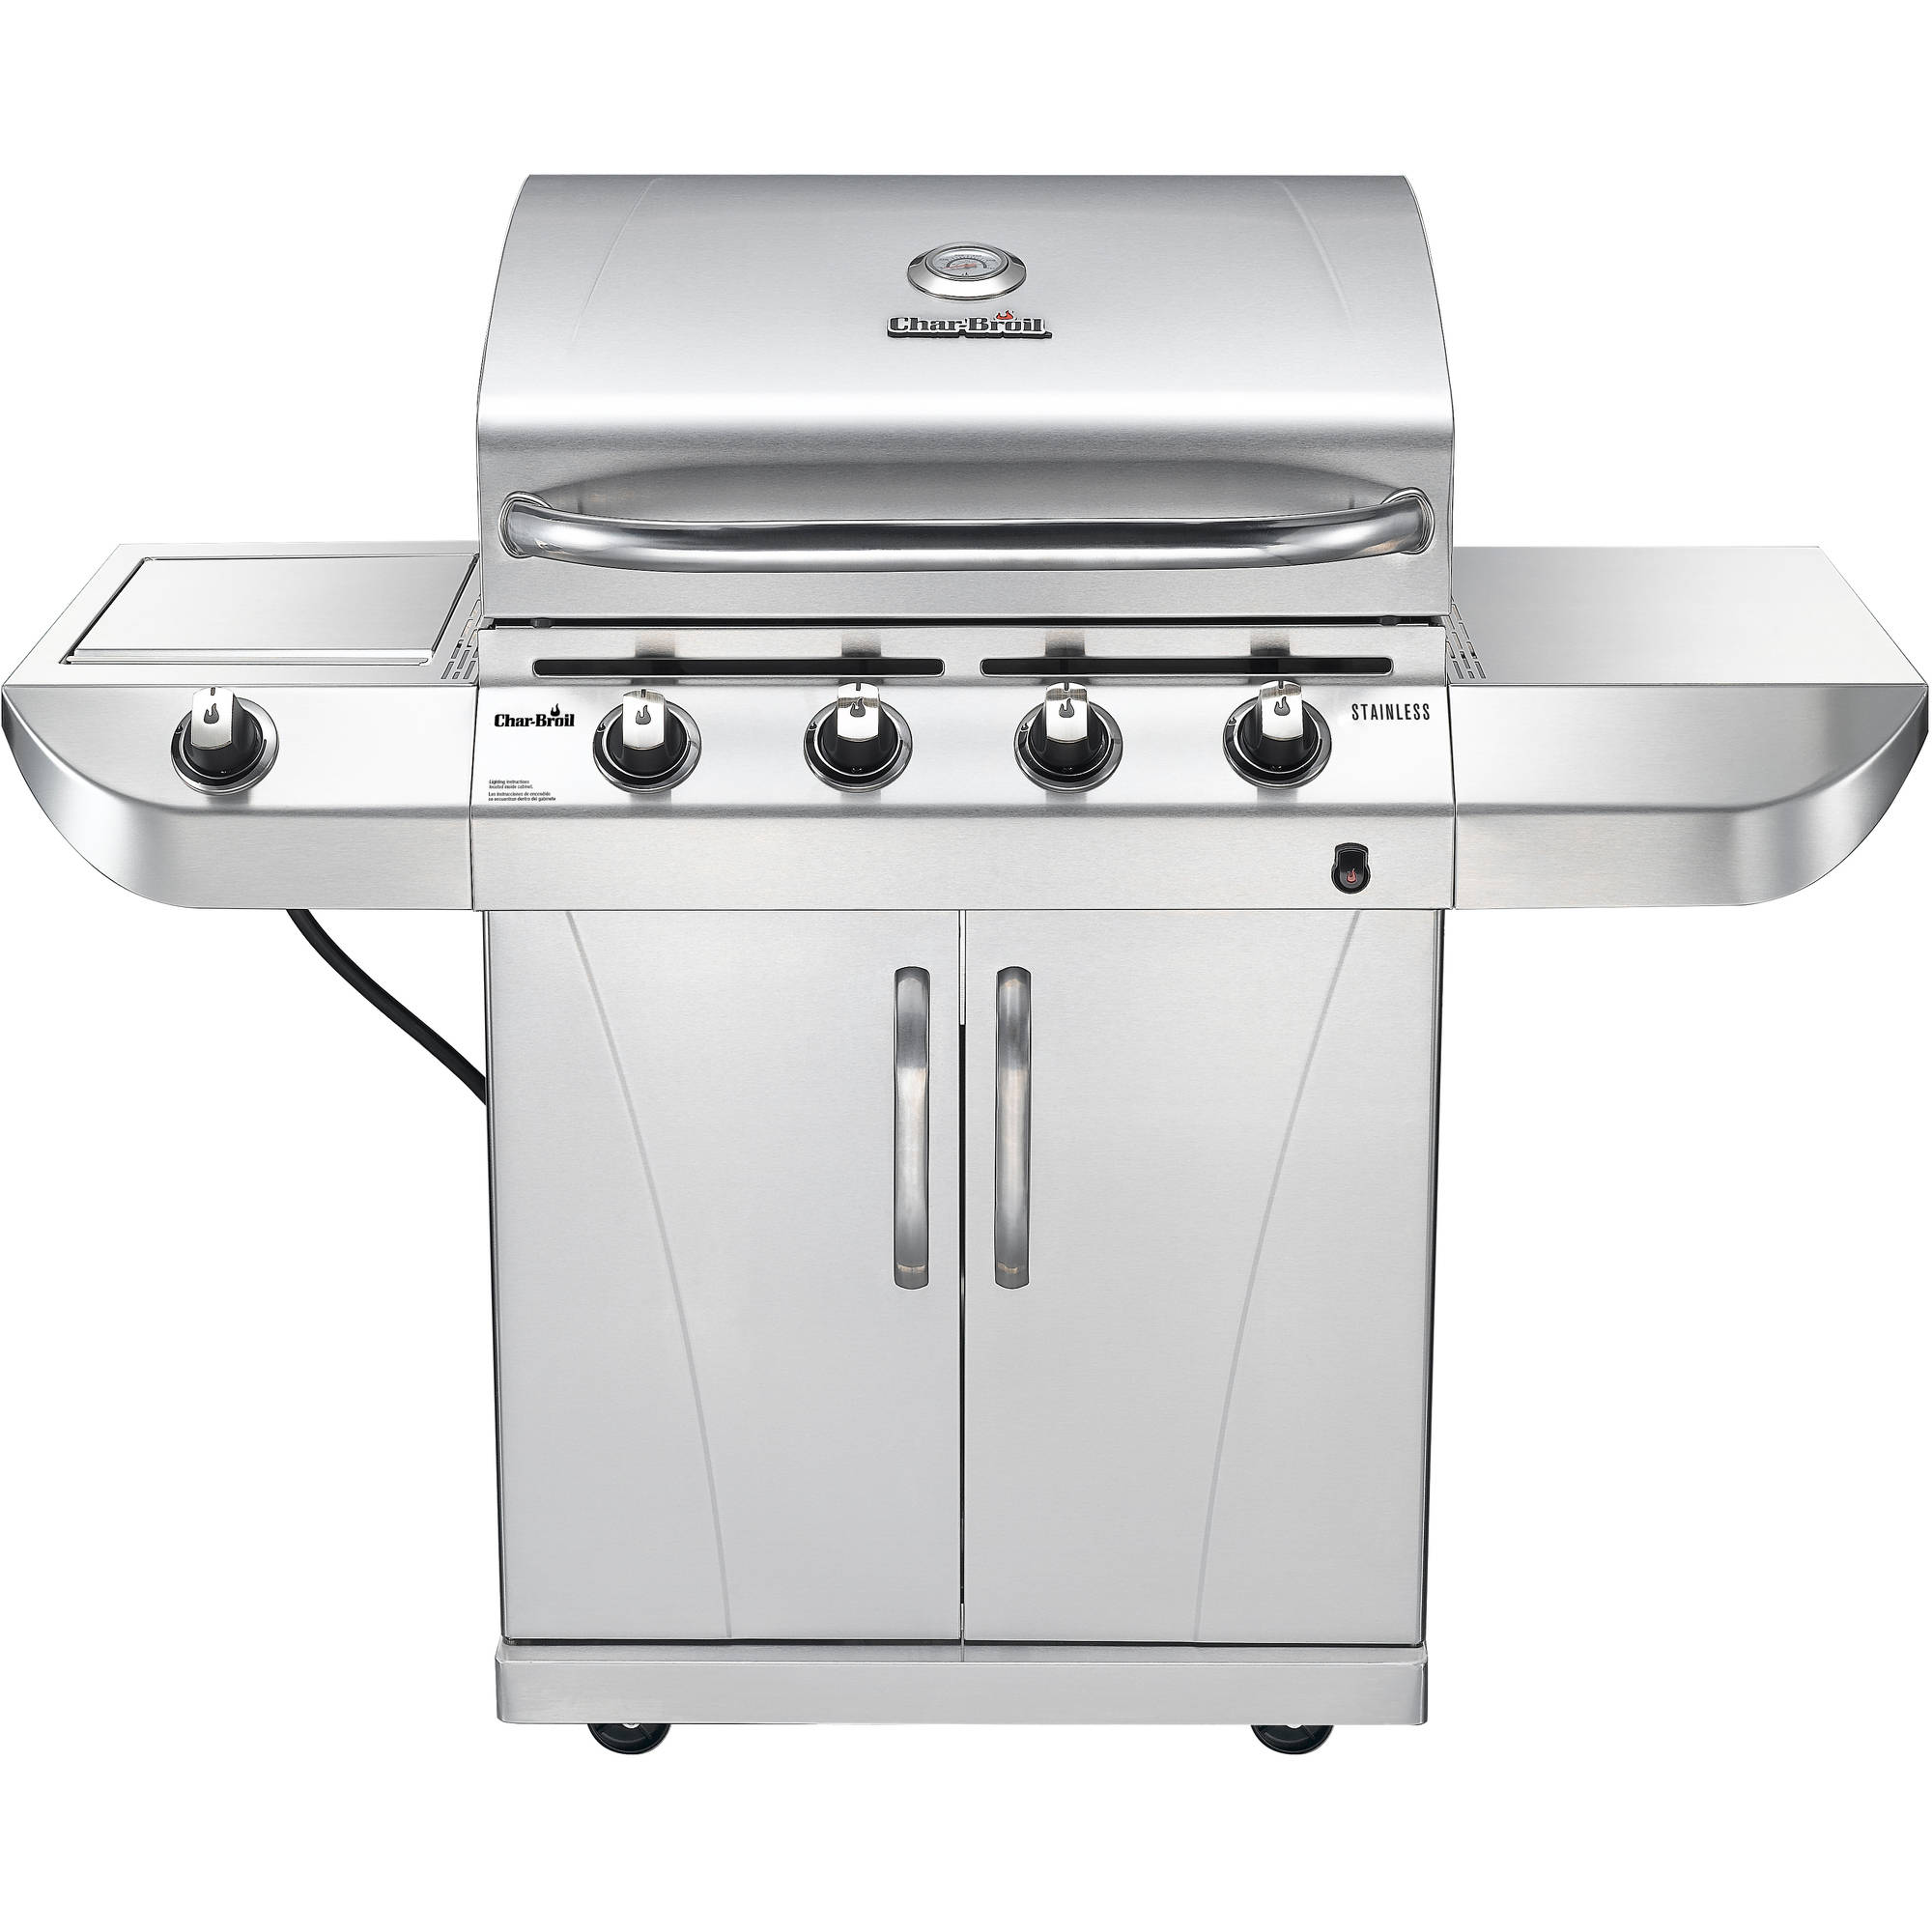 CHAR-BROIL 4-BURNER STAINLESS